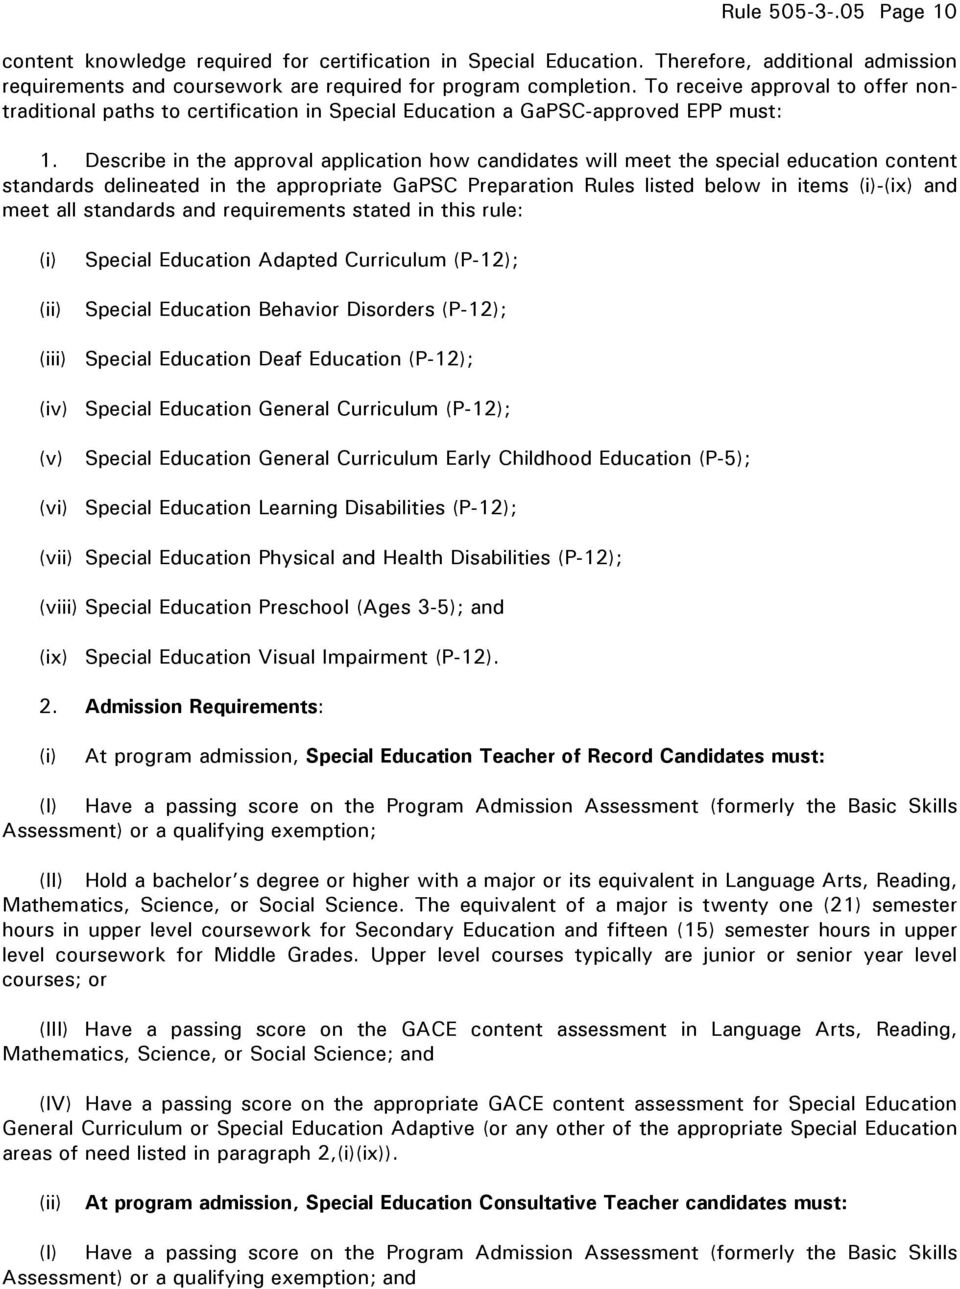 Describe in the approval application how candidates will meet the special education content standards delineated in the appropriate GaPSC Preparation Rules listed below in items (i)-(ix) and meet all